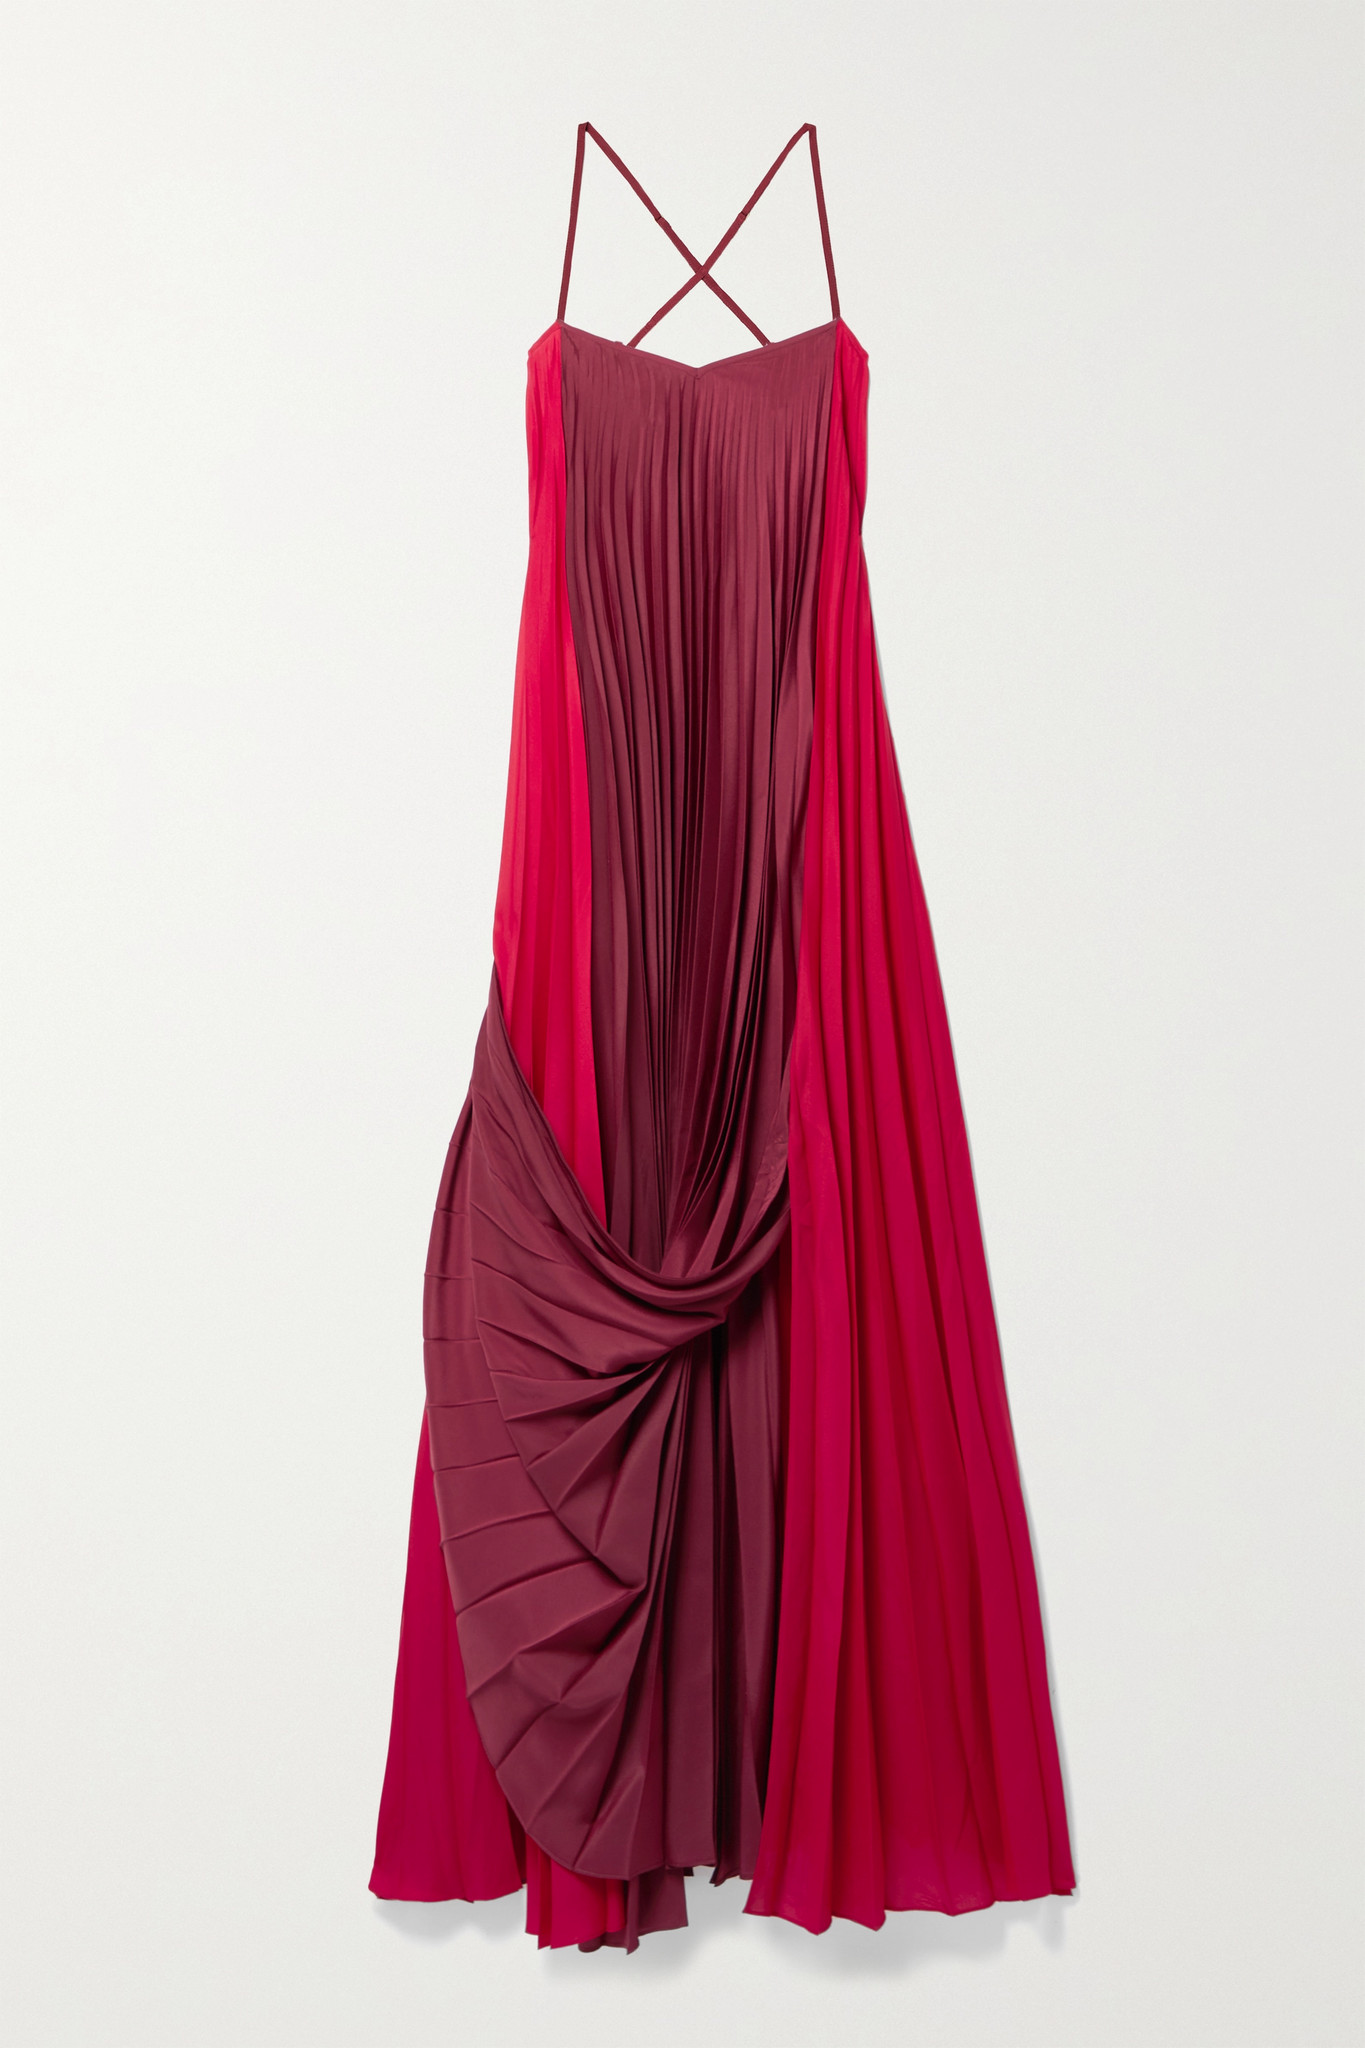 ZEUS + DIONE - Alysi Draped Pleated Two-tone Crepe De Chine Maxi Dress - Red - FR36